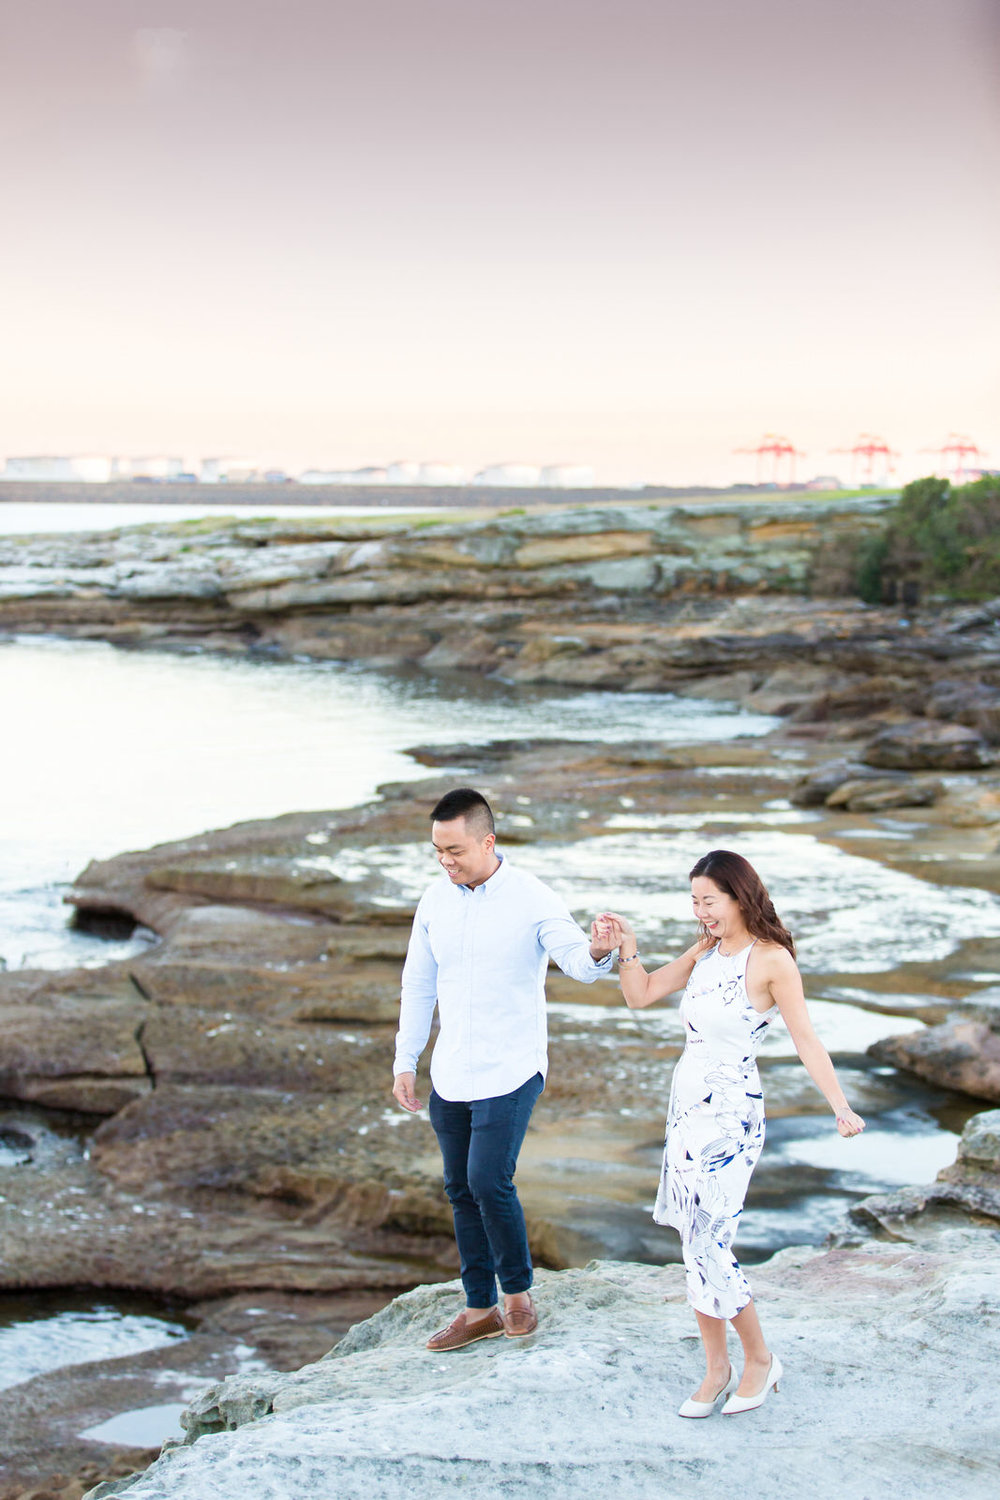 Sydney Engagement Pre-Wedding Photography Session - Jennifer Lam Photography - La Perouse (5).jpg